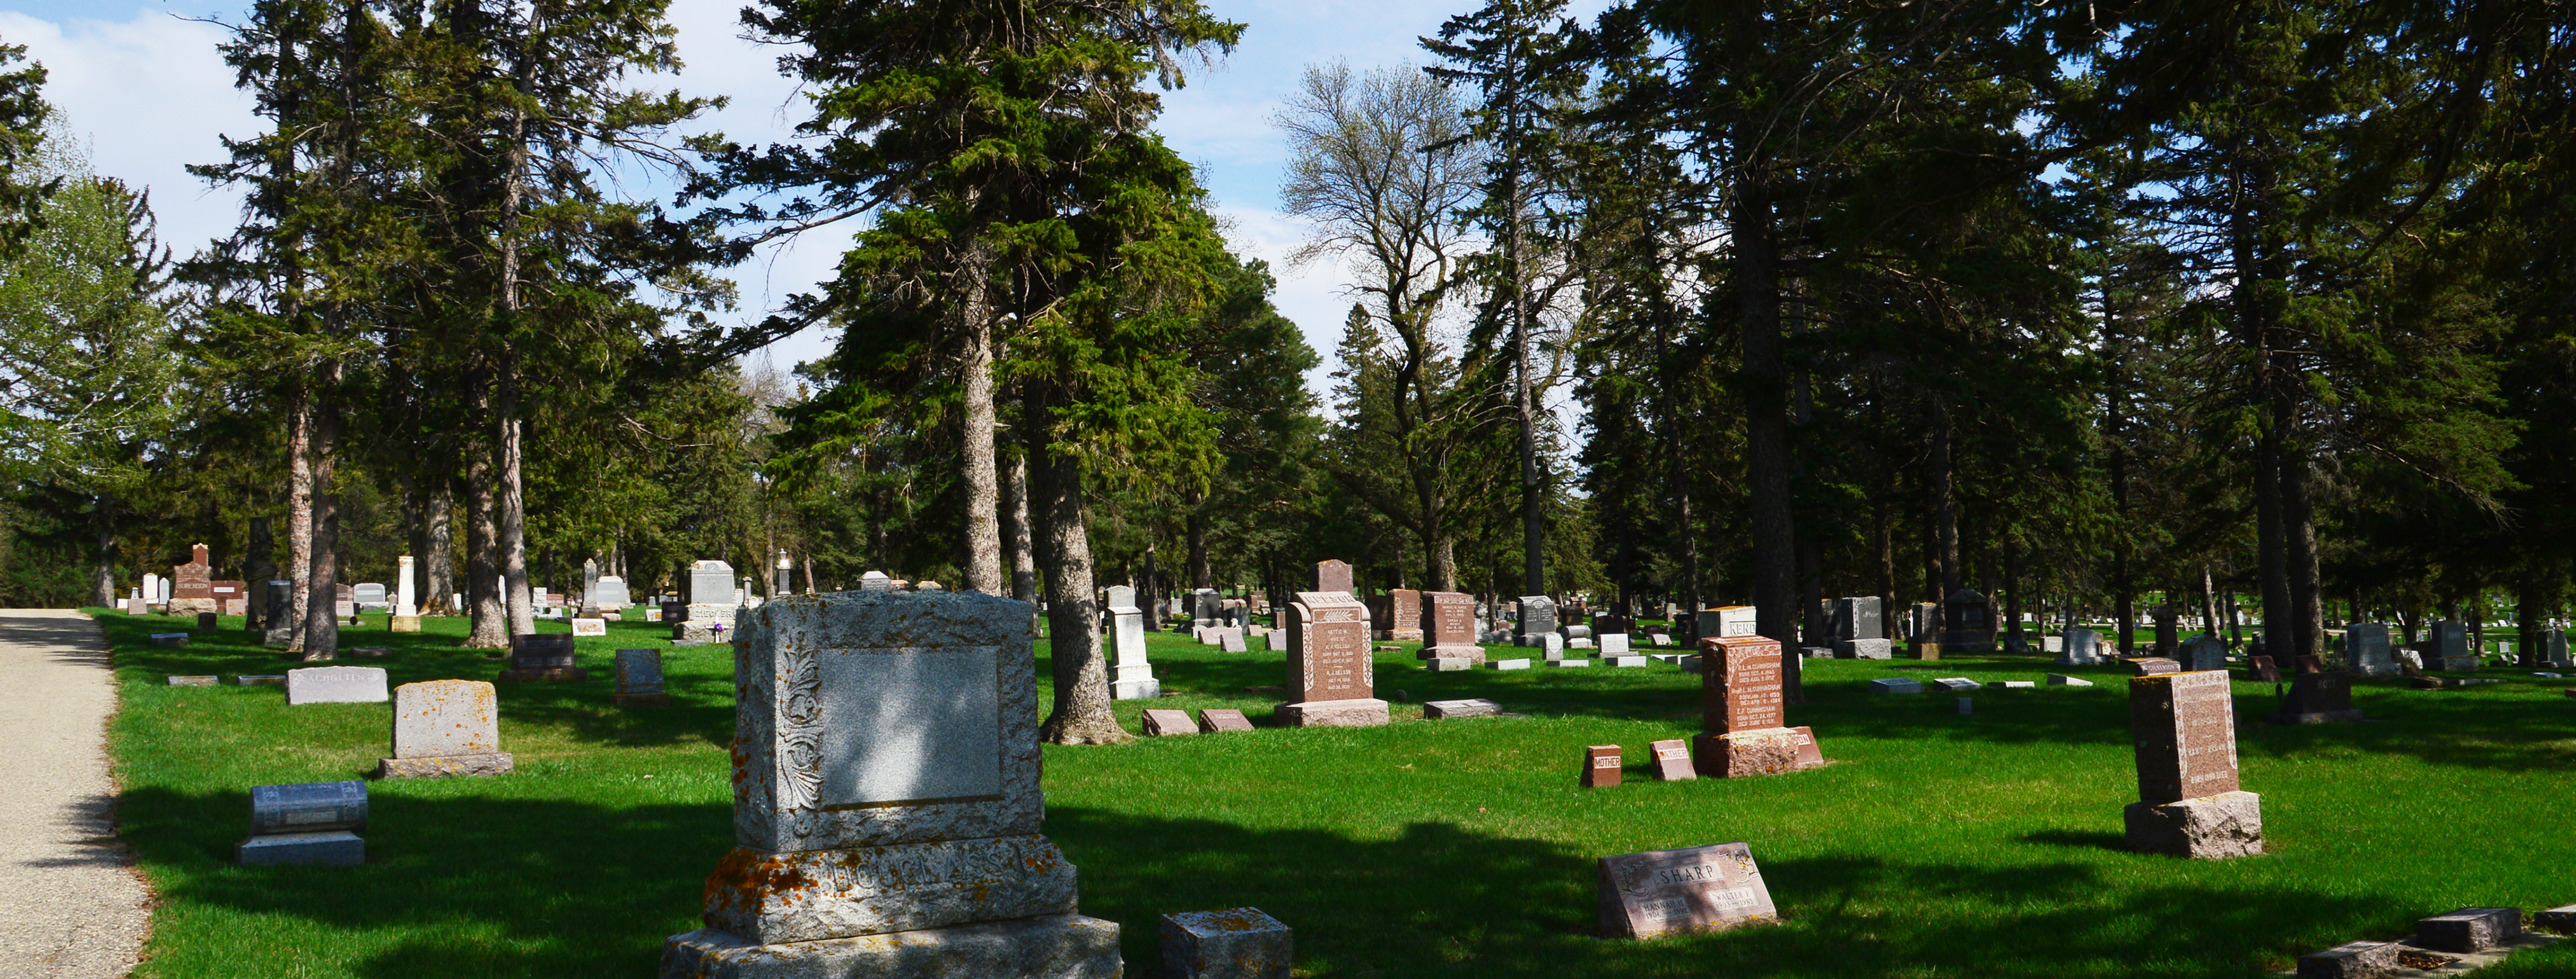 Find Greenwood Cemetery